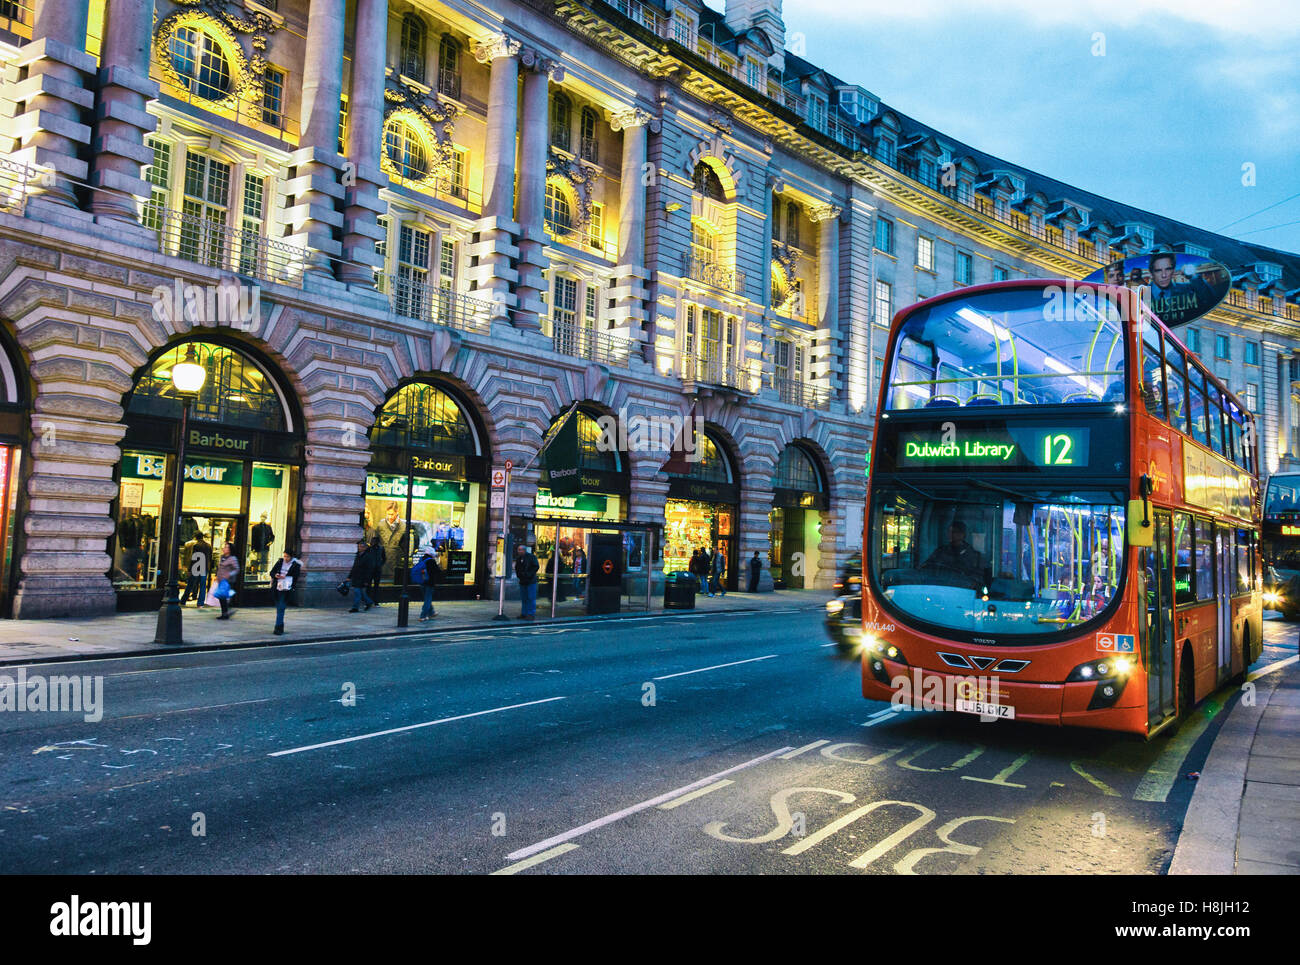 Traditional red bus in a street at dusk. - Stock Image